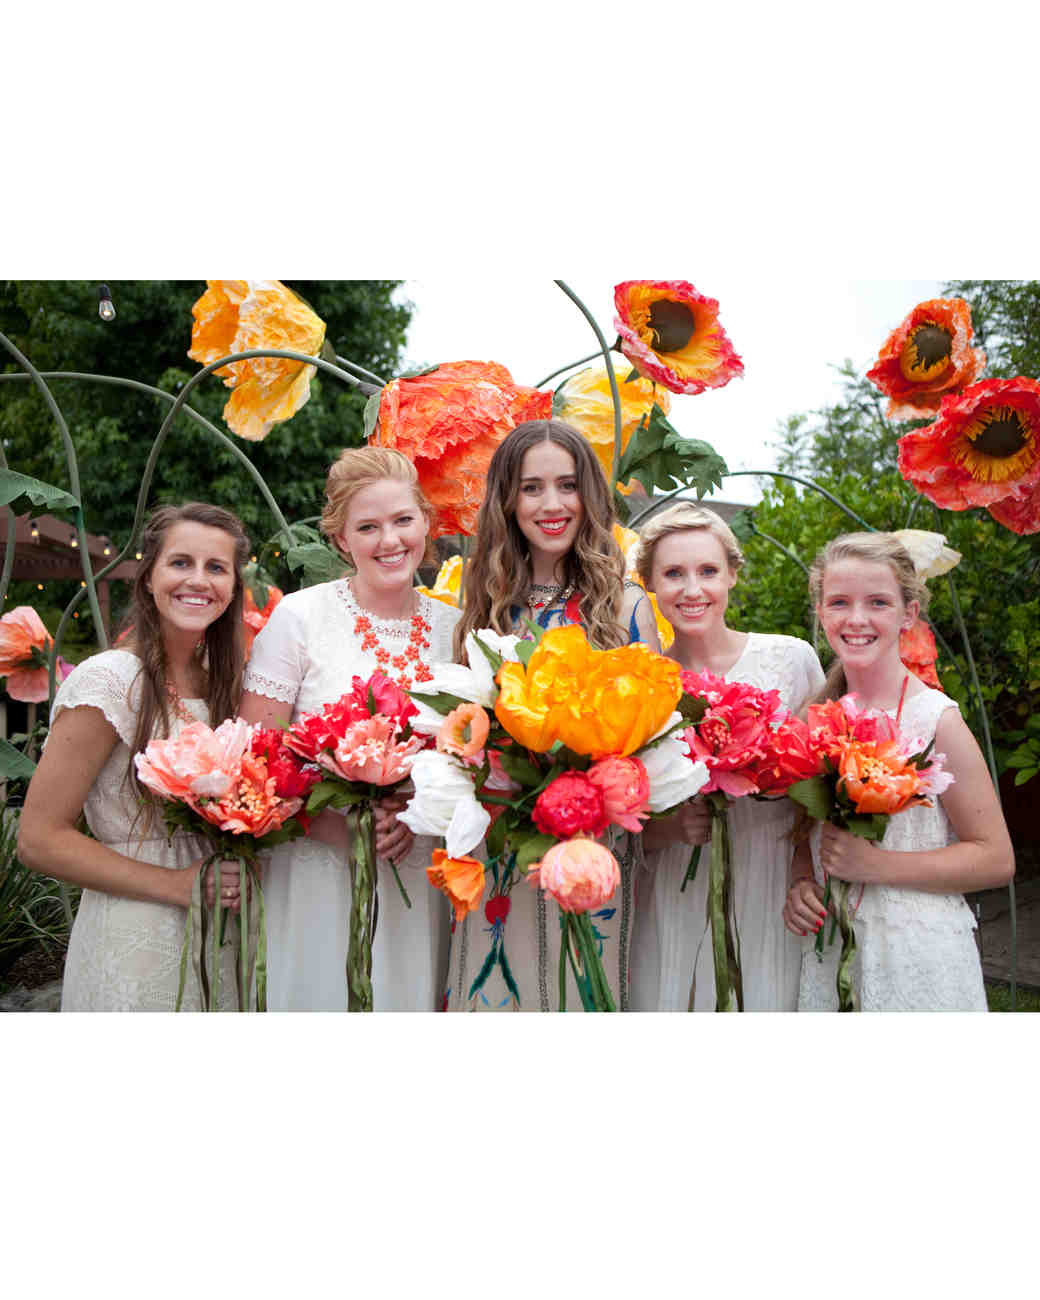 caitlin-tanner-wedding-nn-bridesmaids-0514-horizontal.jpeg